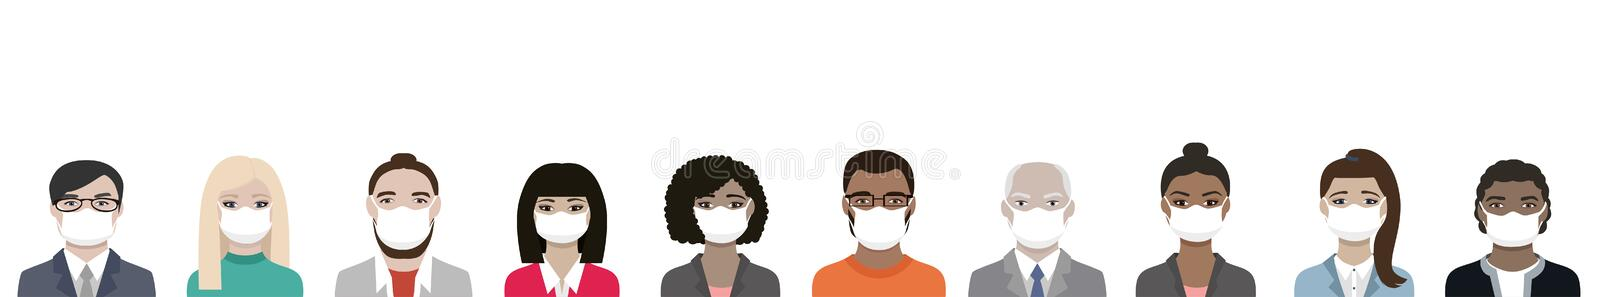 Banner of Multiracial people wearing ppe masks for coronavirus covid-19 protection. A diversity team of men and women vector illustration